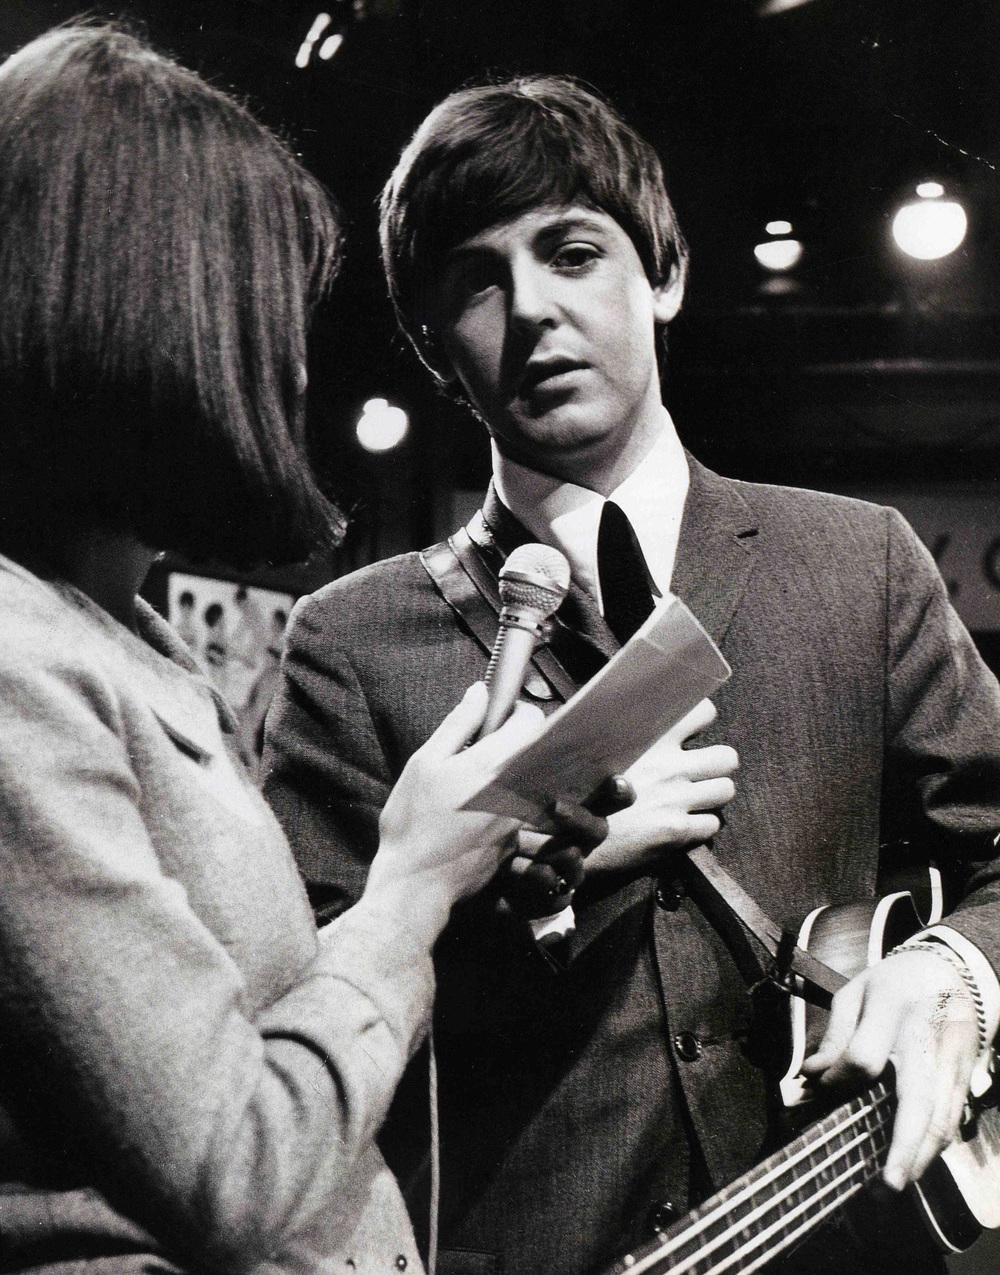 Paul McCartney being interviewed on Ready, Steady, Go! 1964.